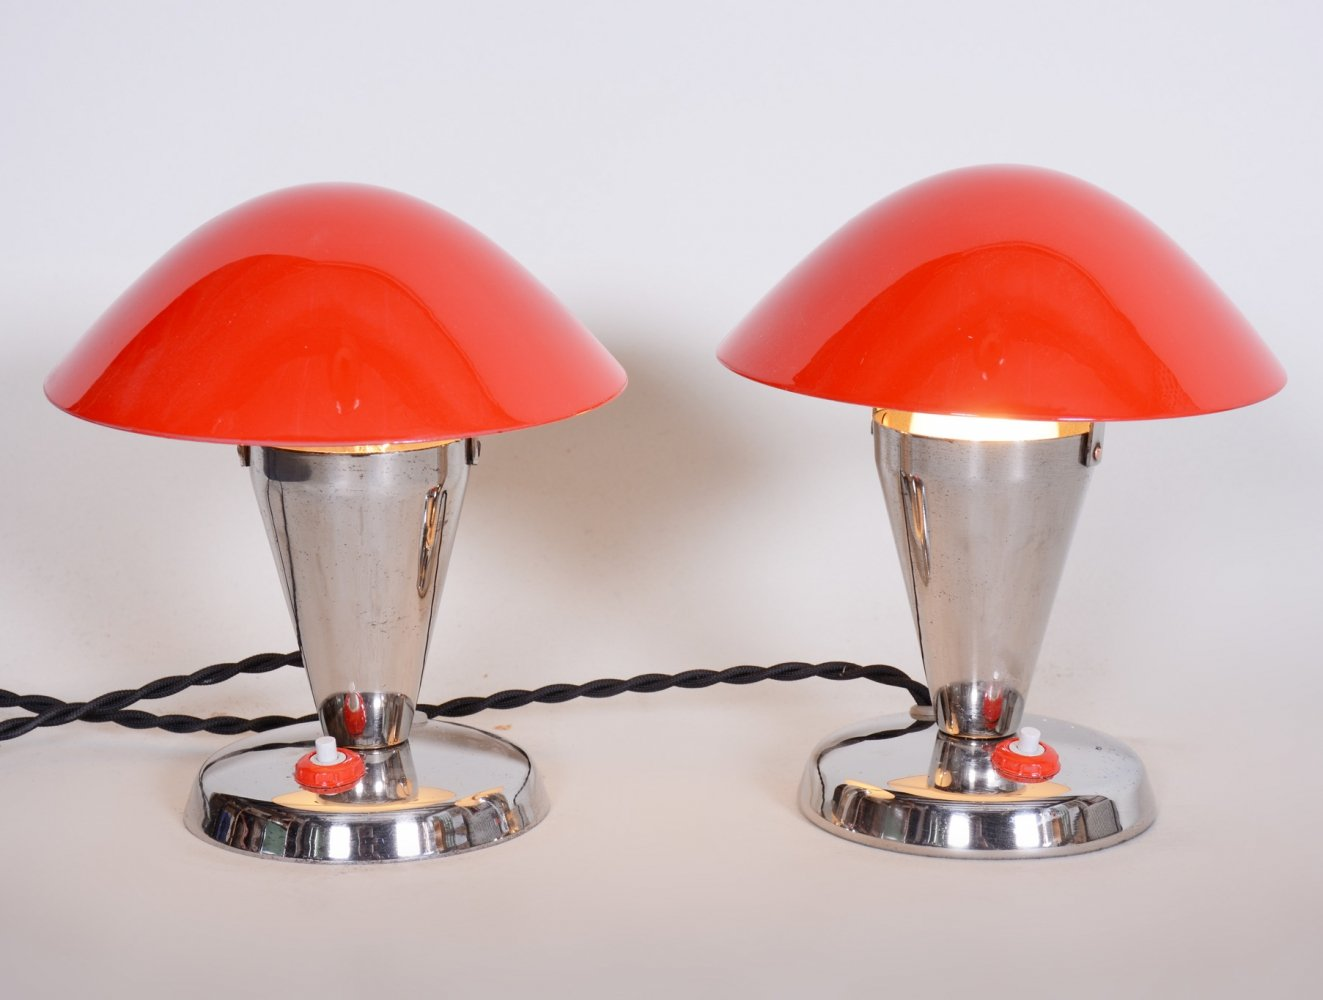 Pair of Czech Chromed Red Bauhaus Lamps by Napako, 1930s